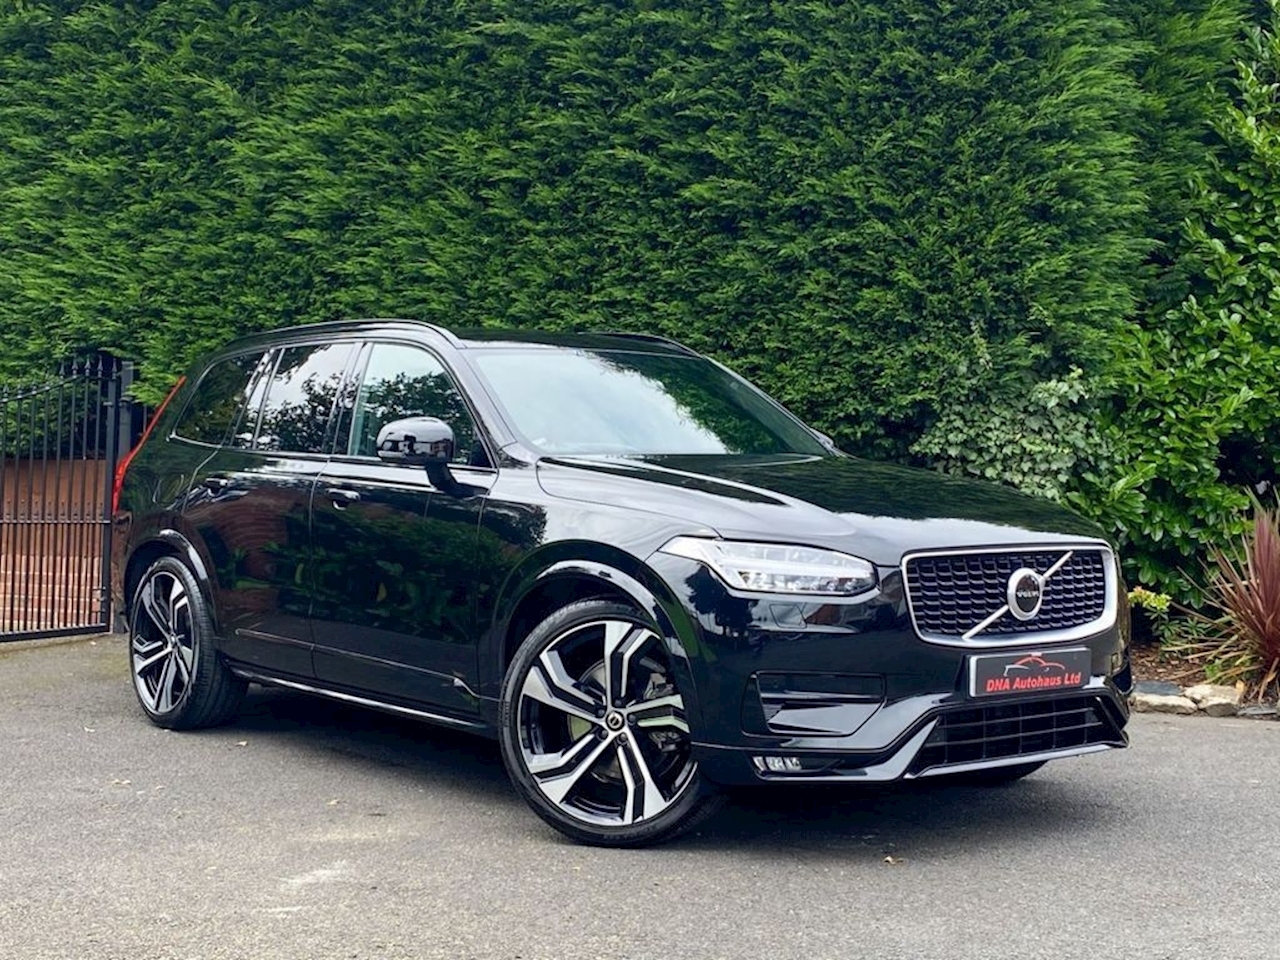 Volvo Xc90 B5 R-Design Pro Awd Estate 2.0 Automatic Diesel